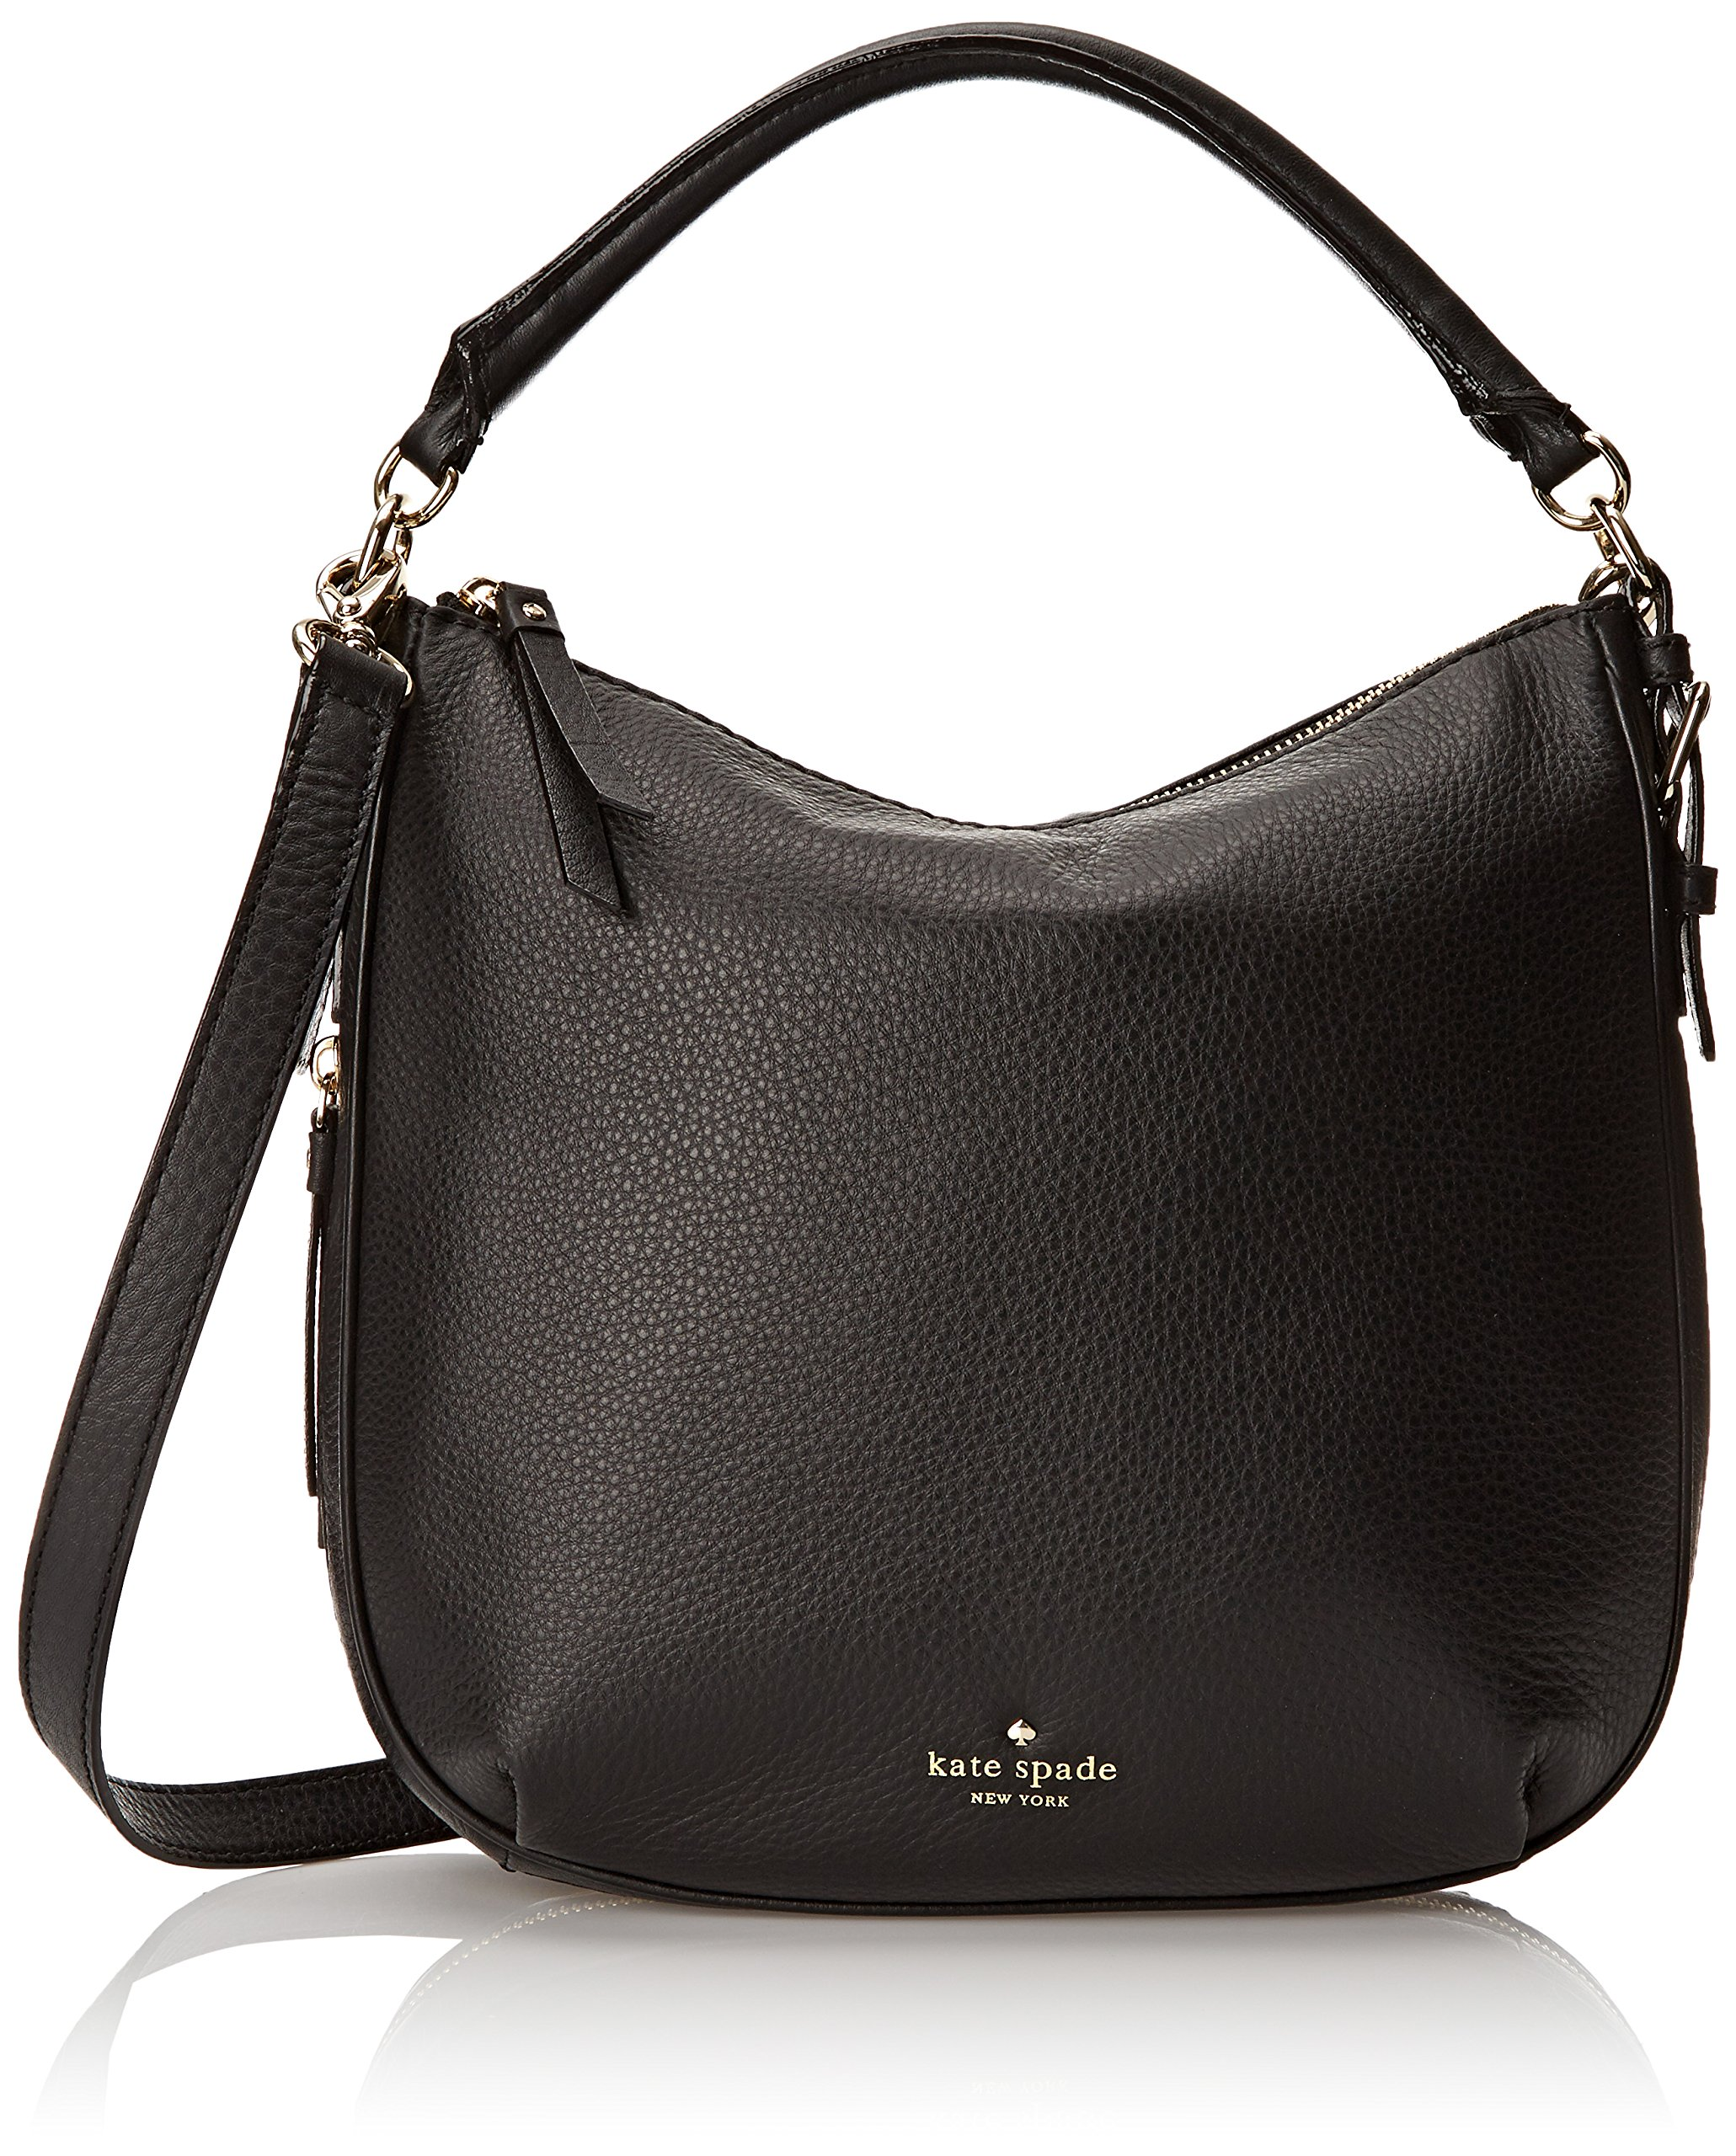 kate spade new york Cobble Hill Small Ella Shoulder Bag, Black, One Size